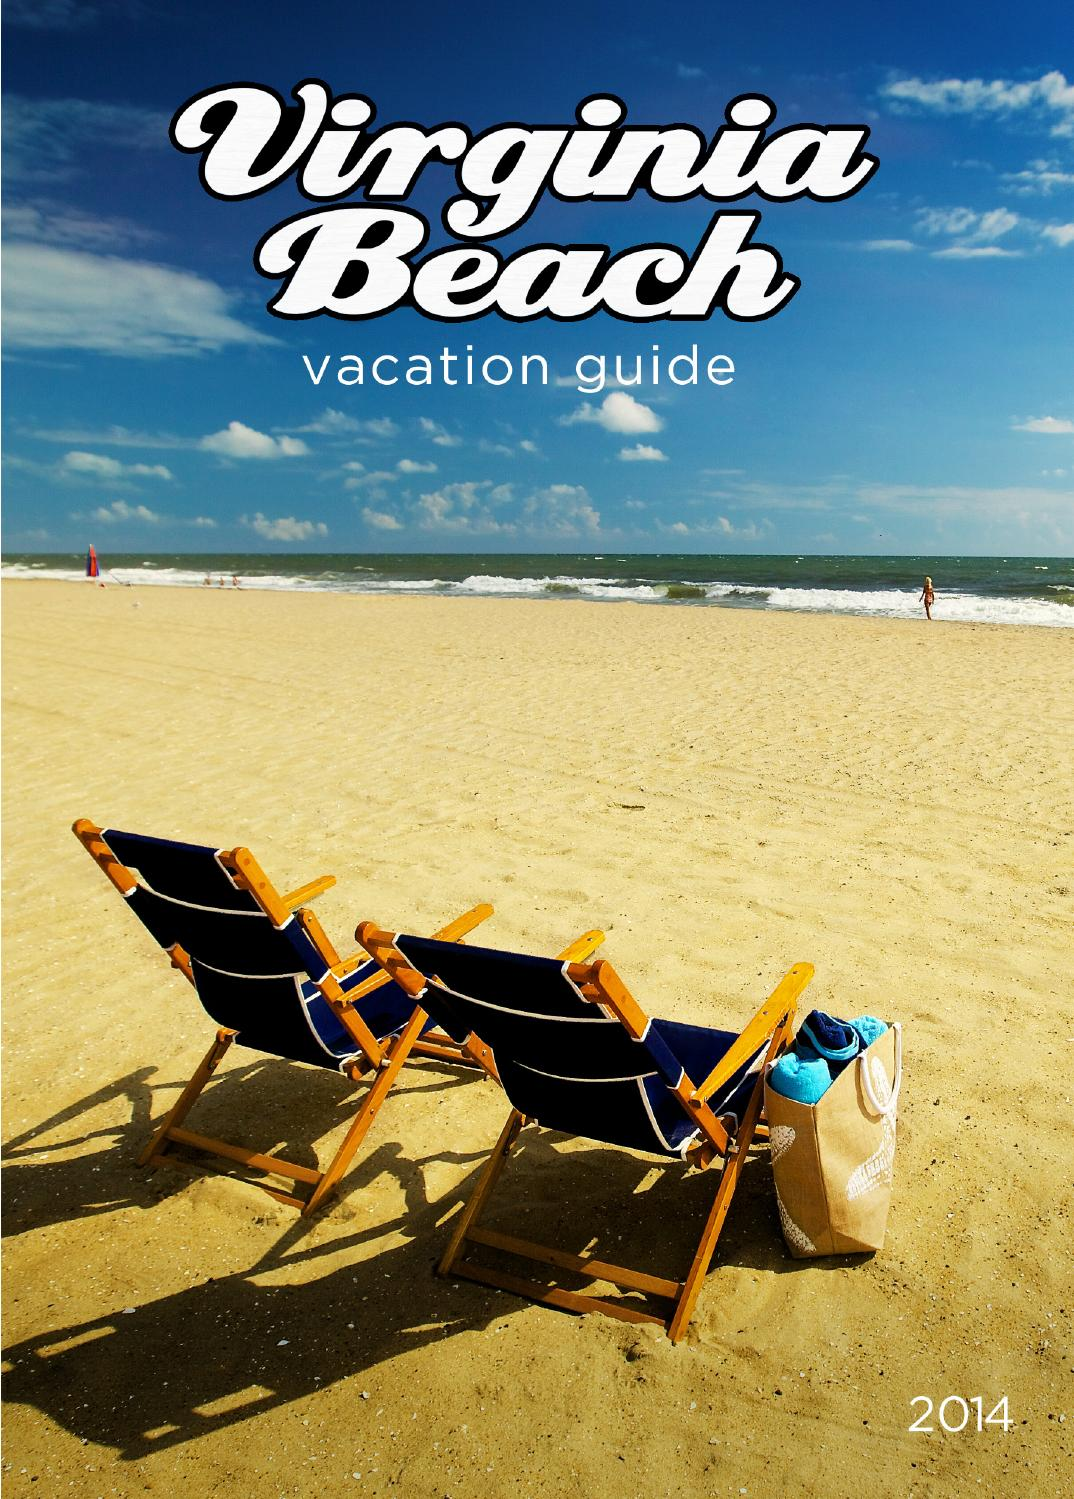 2014 virginia beach vacation guide by bcf